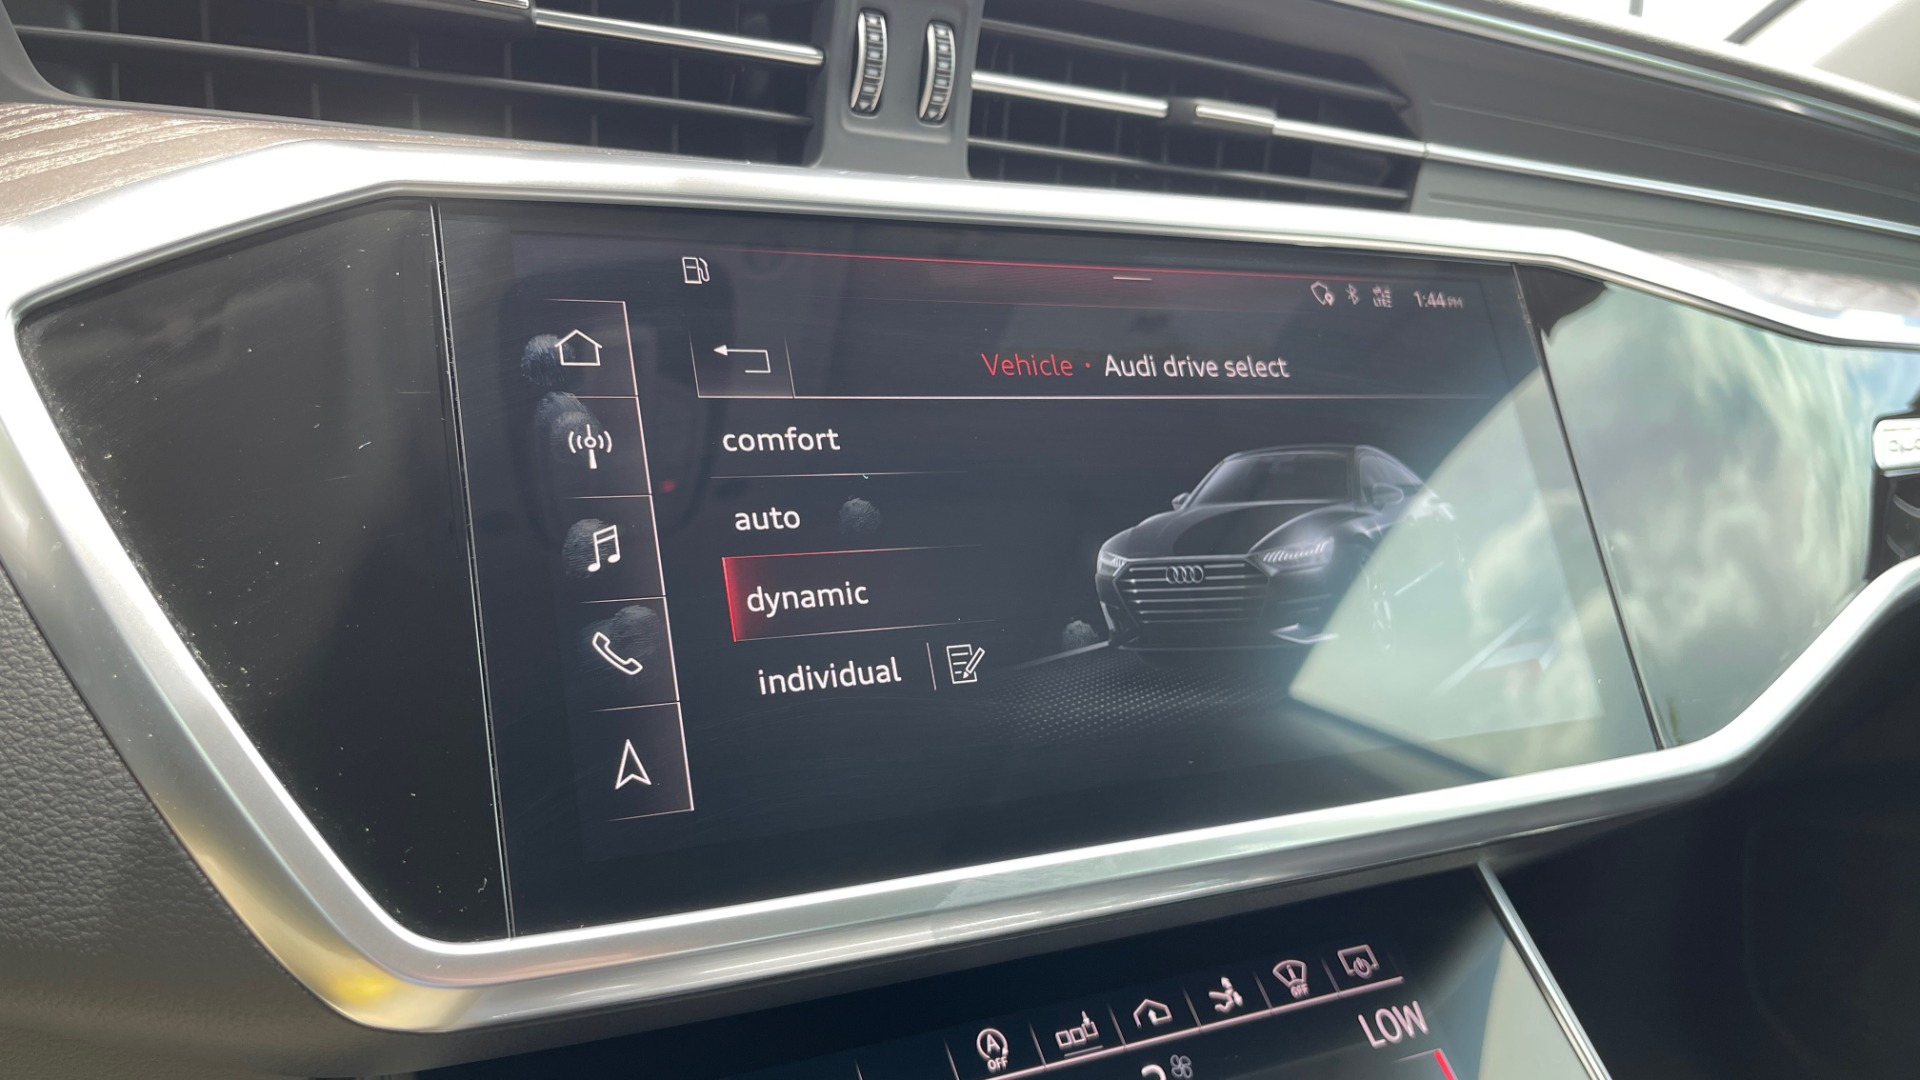 Used 2019 Audi A7 PRESTIGE 55 TFSI 3.0T / NAV / B&O SND / SUNROOF / S-LINE / 21IN WHLS / REAR for sale $66,995 at Formula Imports in Charlotte NC 28227 52